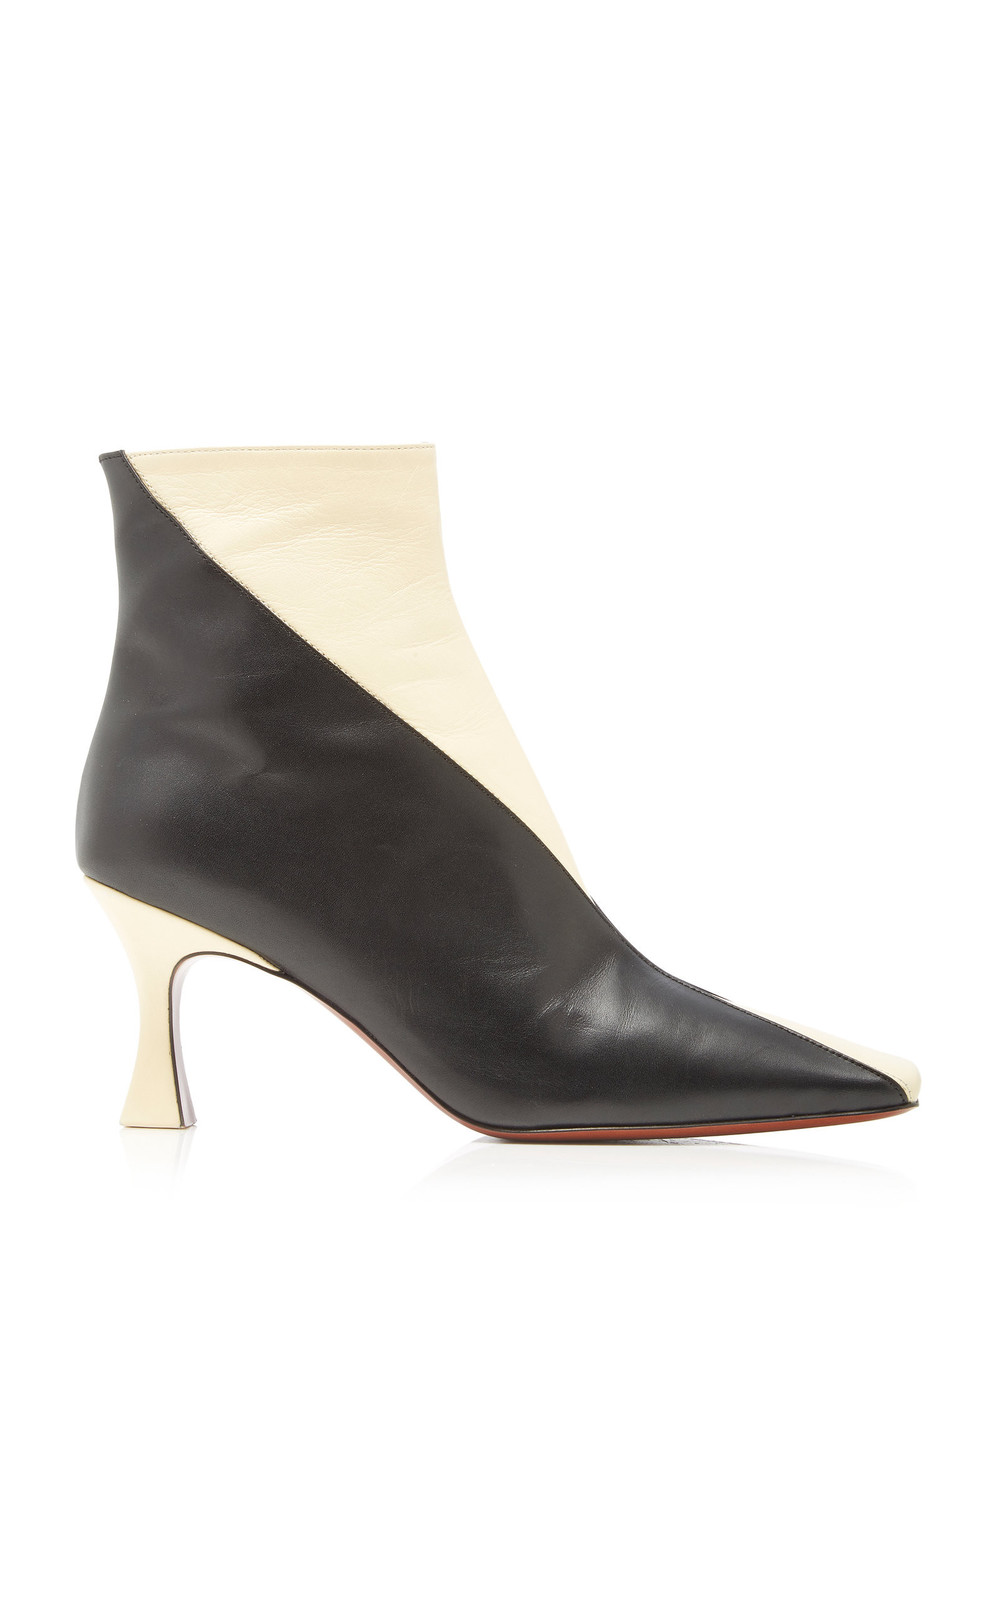 Manu Atelier Duck Two-Tone Leather Ankle Boots Size: 38 in black